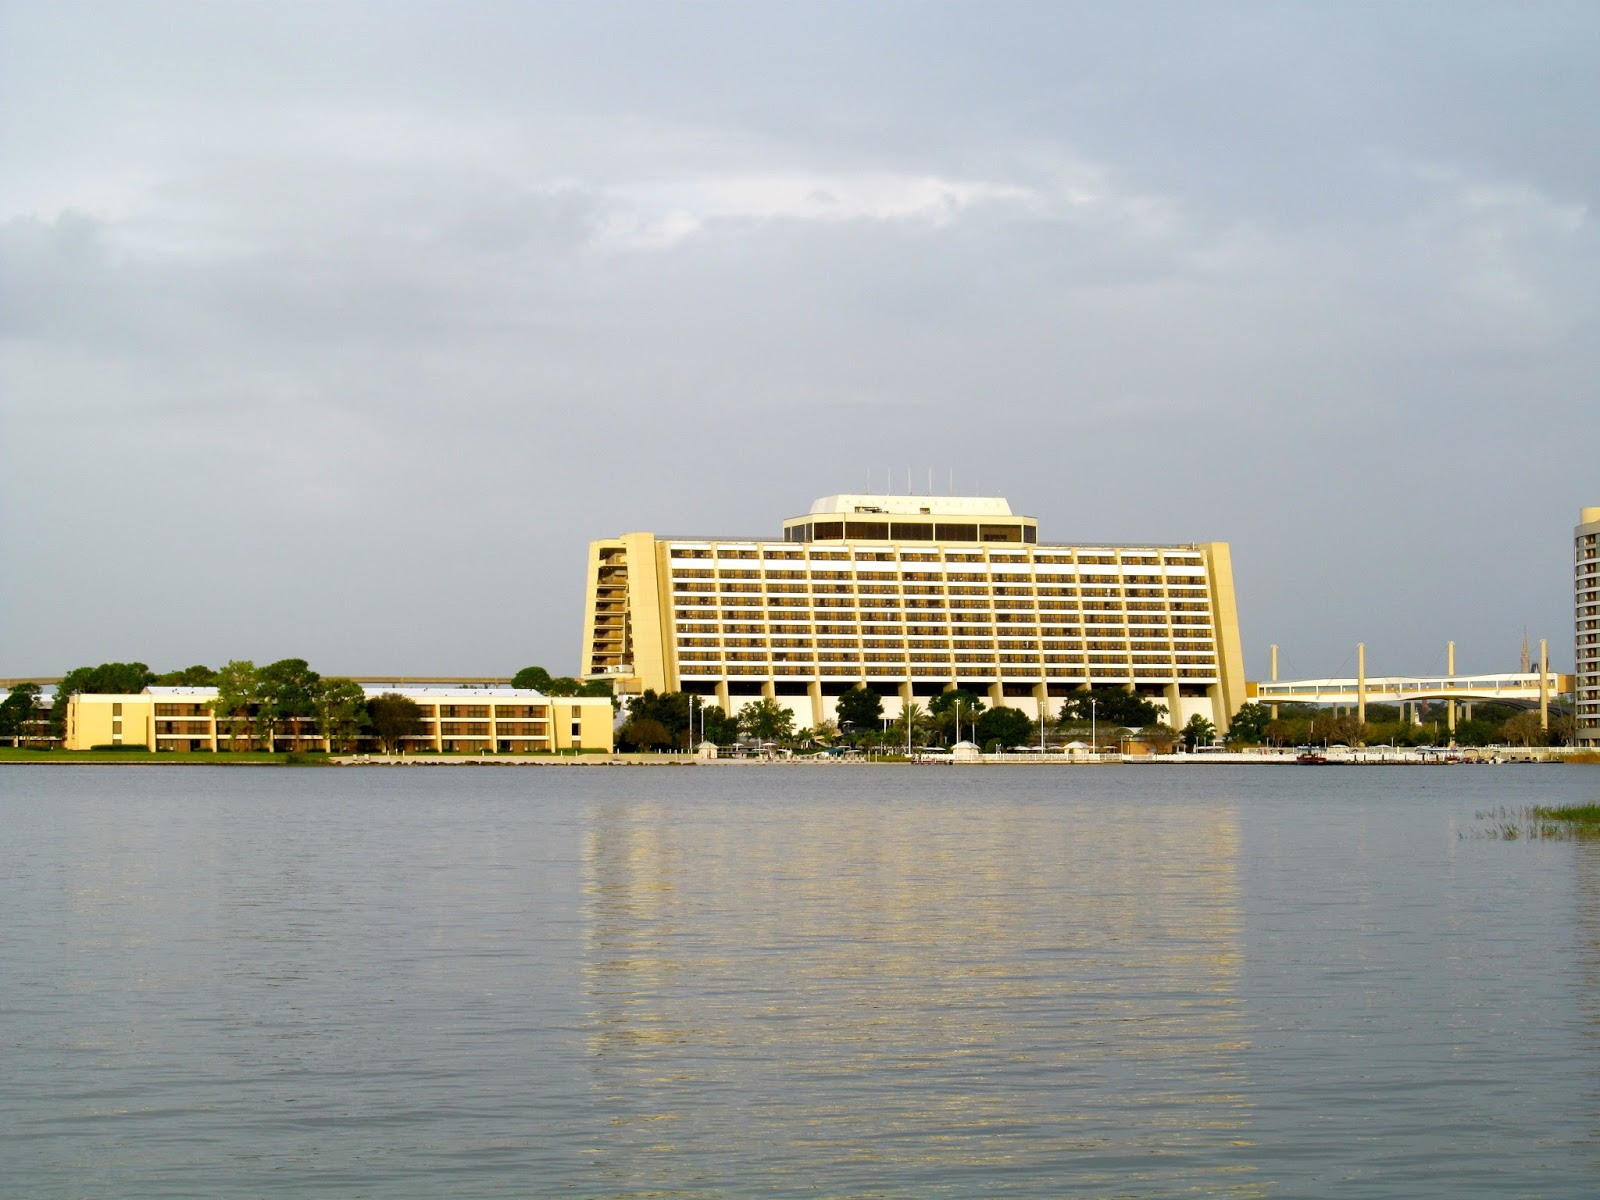 The Contemporary Resort - Walt Disney World Resort - www.ouroutdoortravels.blogspot.com